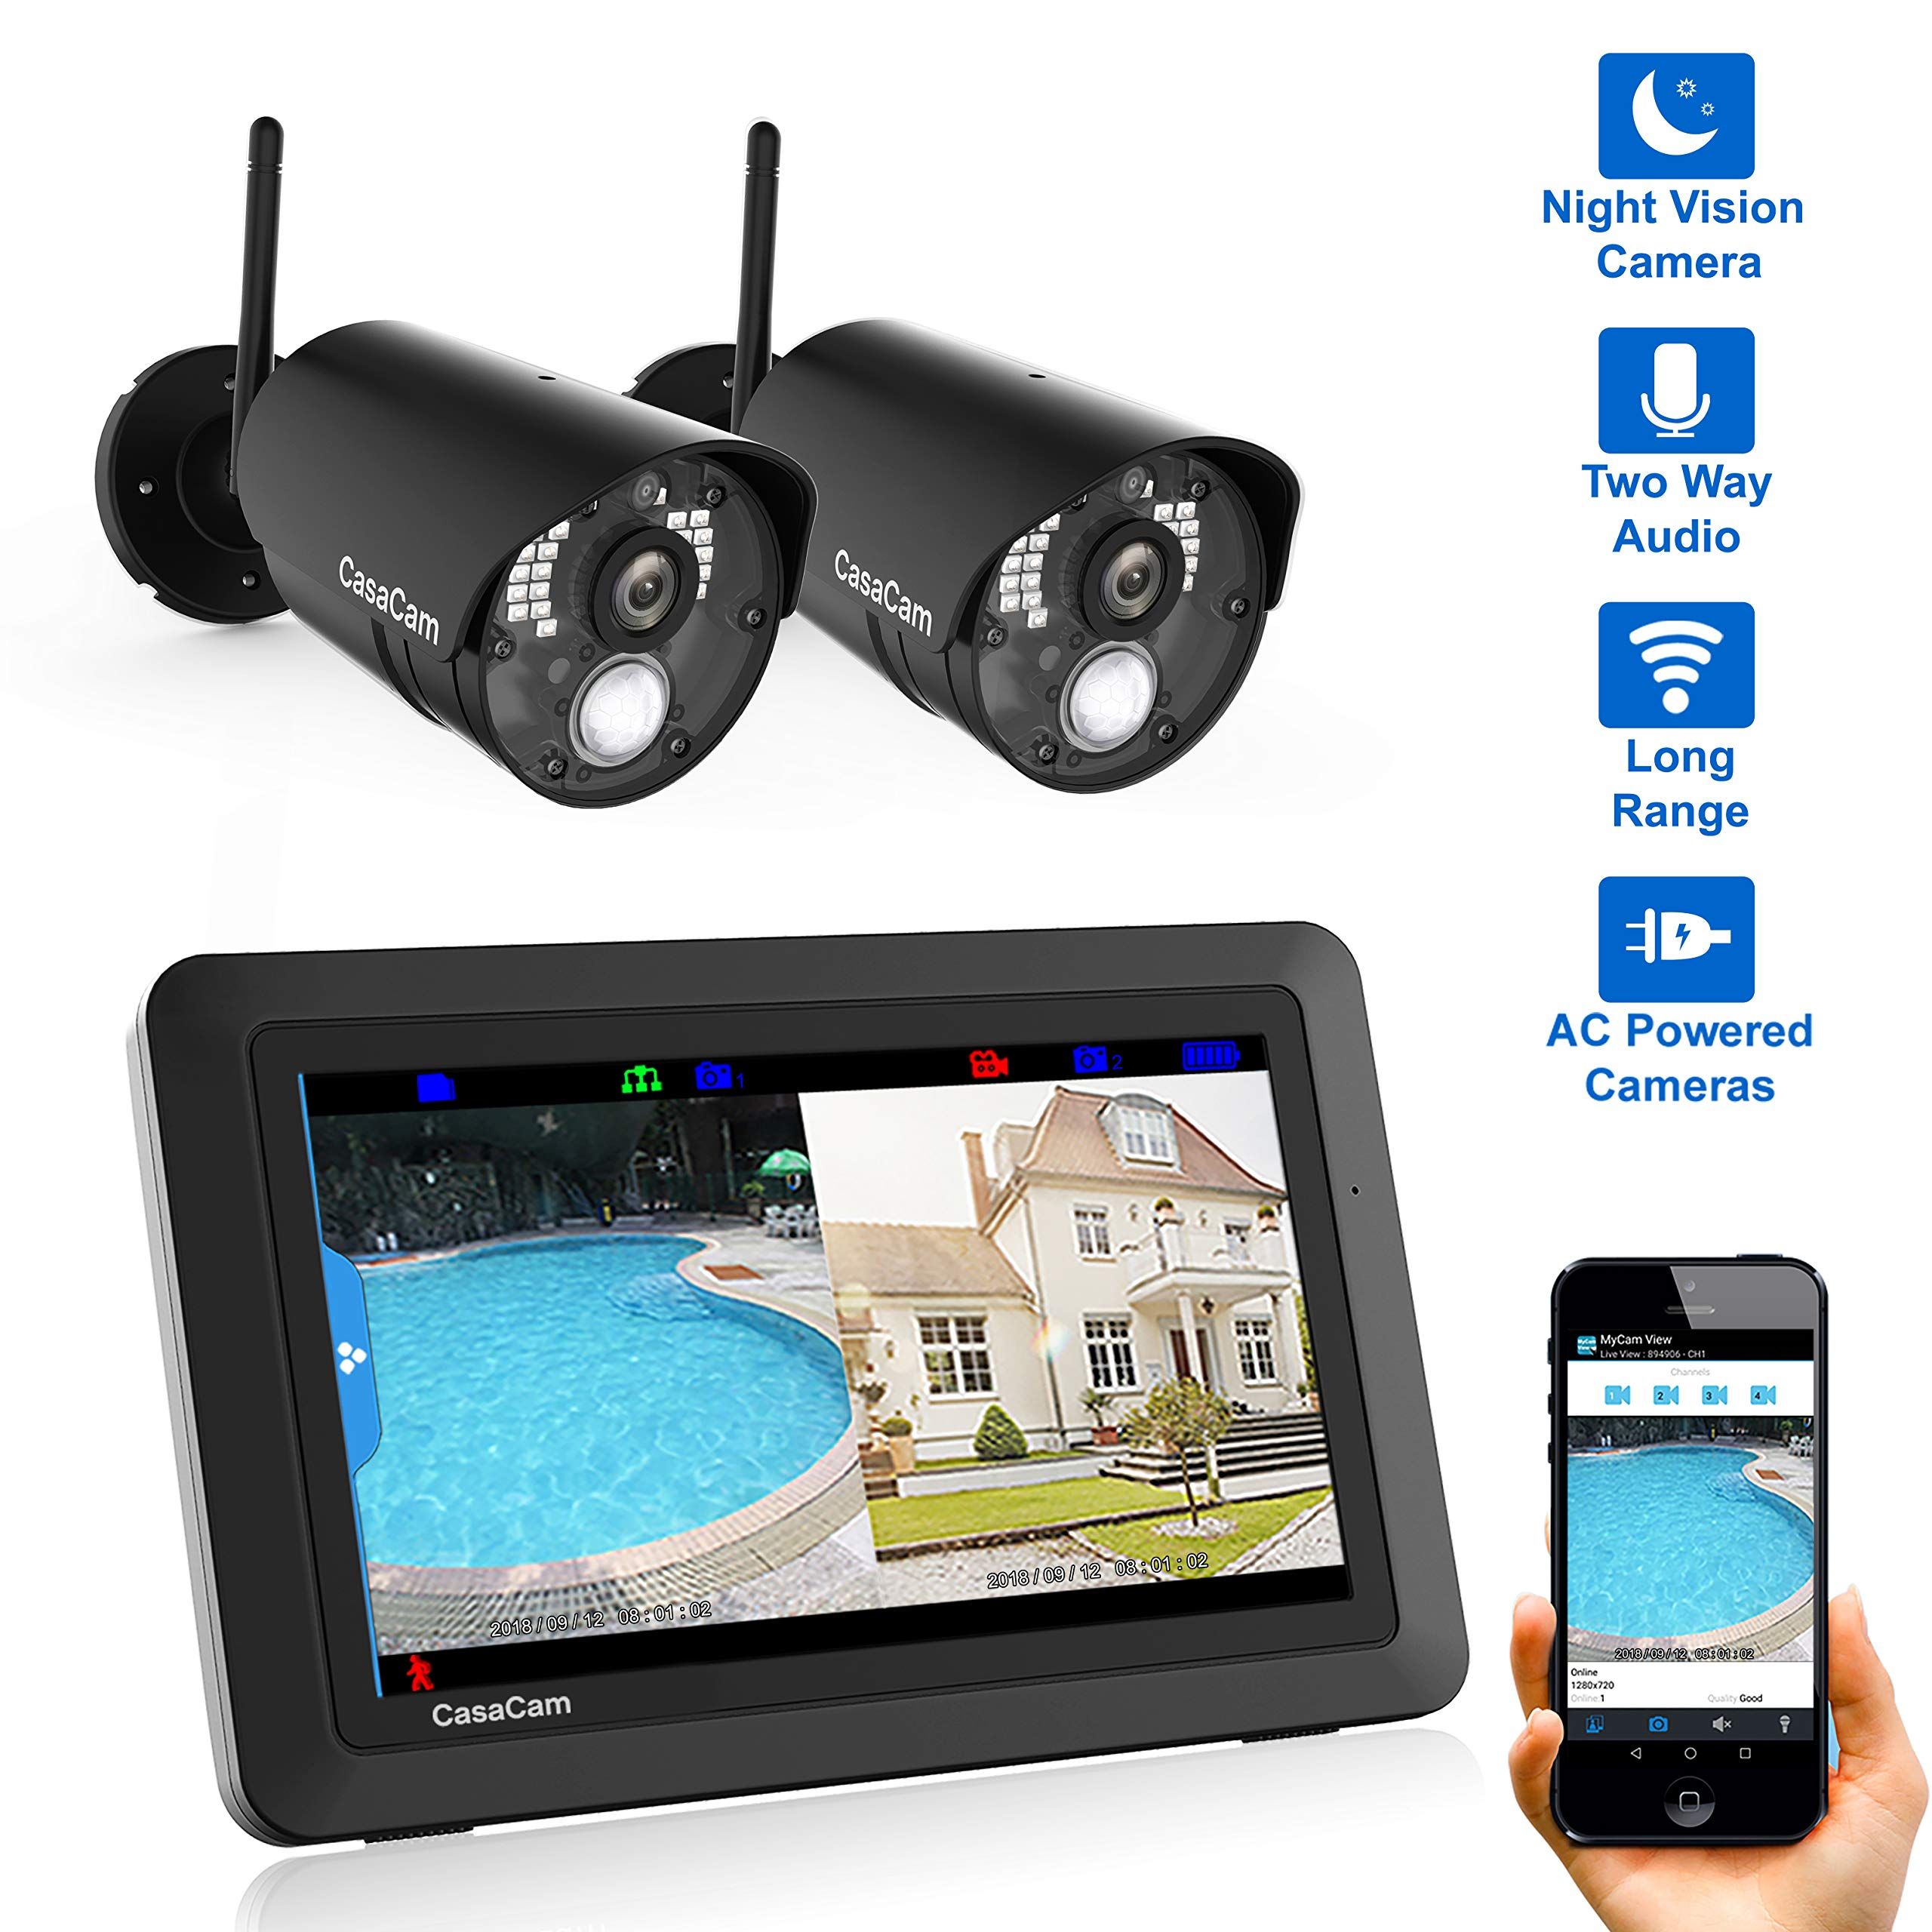 CasaCam VS802 Wireless Security Camera System with AC Powered HD Nightvision Cameras and 7'' Touchscreen Monitor (2-cam kit) by CasaCam